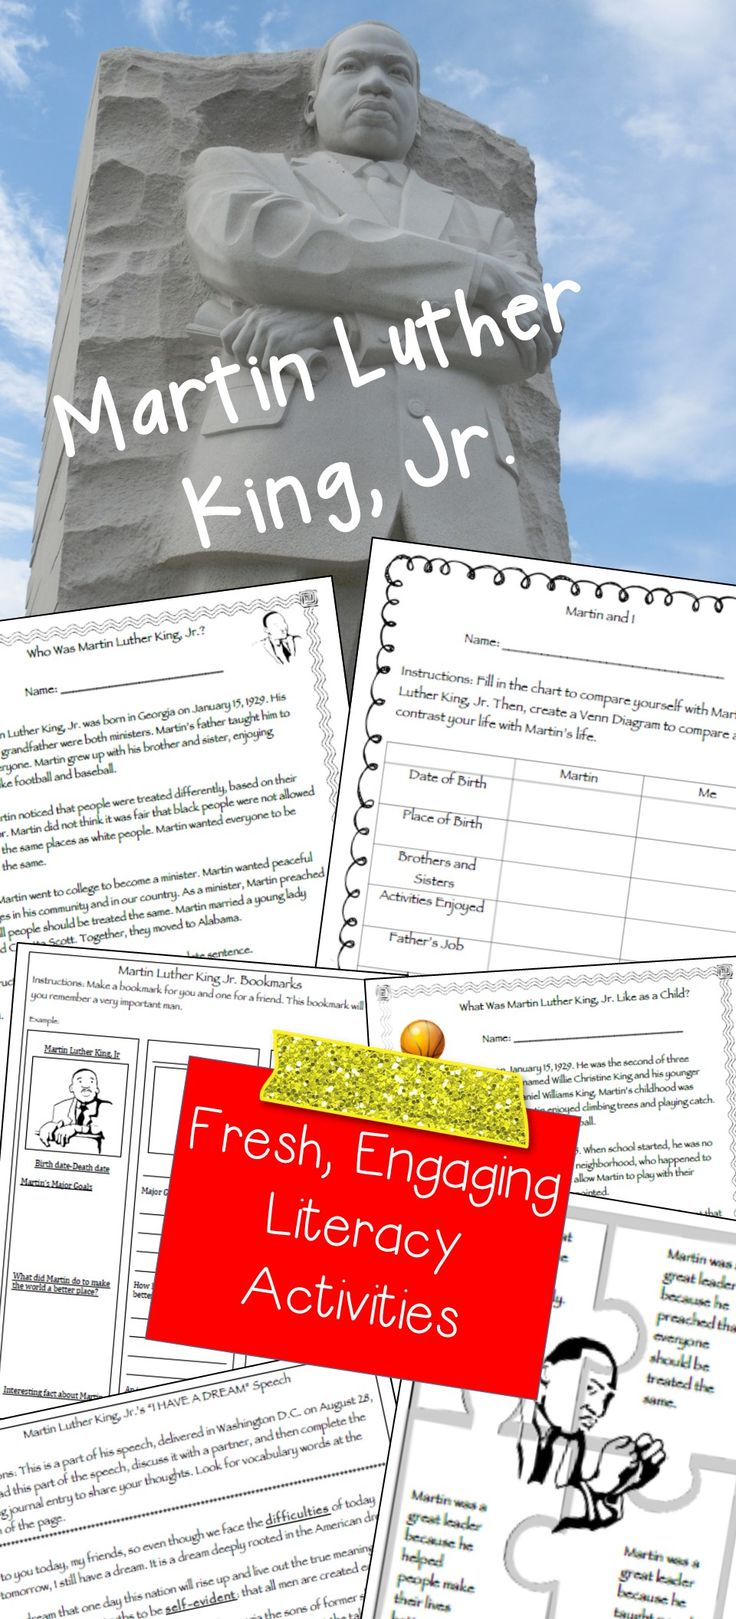 Are you excited to teach your students about the legacy of Martin Luther King, Jr.? Are you looking for more than just reading comprehension passages on this great American? You will find several fresh, engaging activities in this packet to help your students get excited about Martin Luther King, Jr.